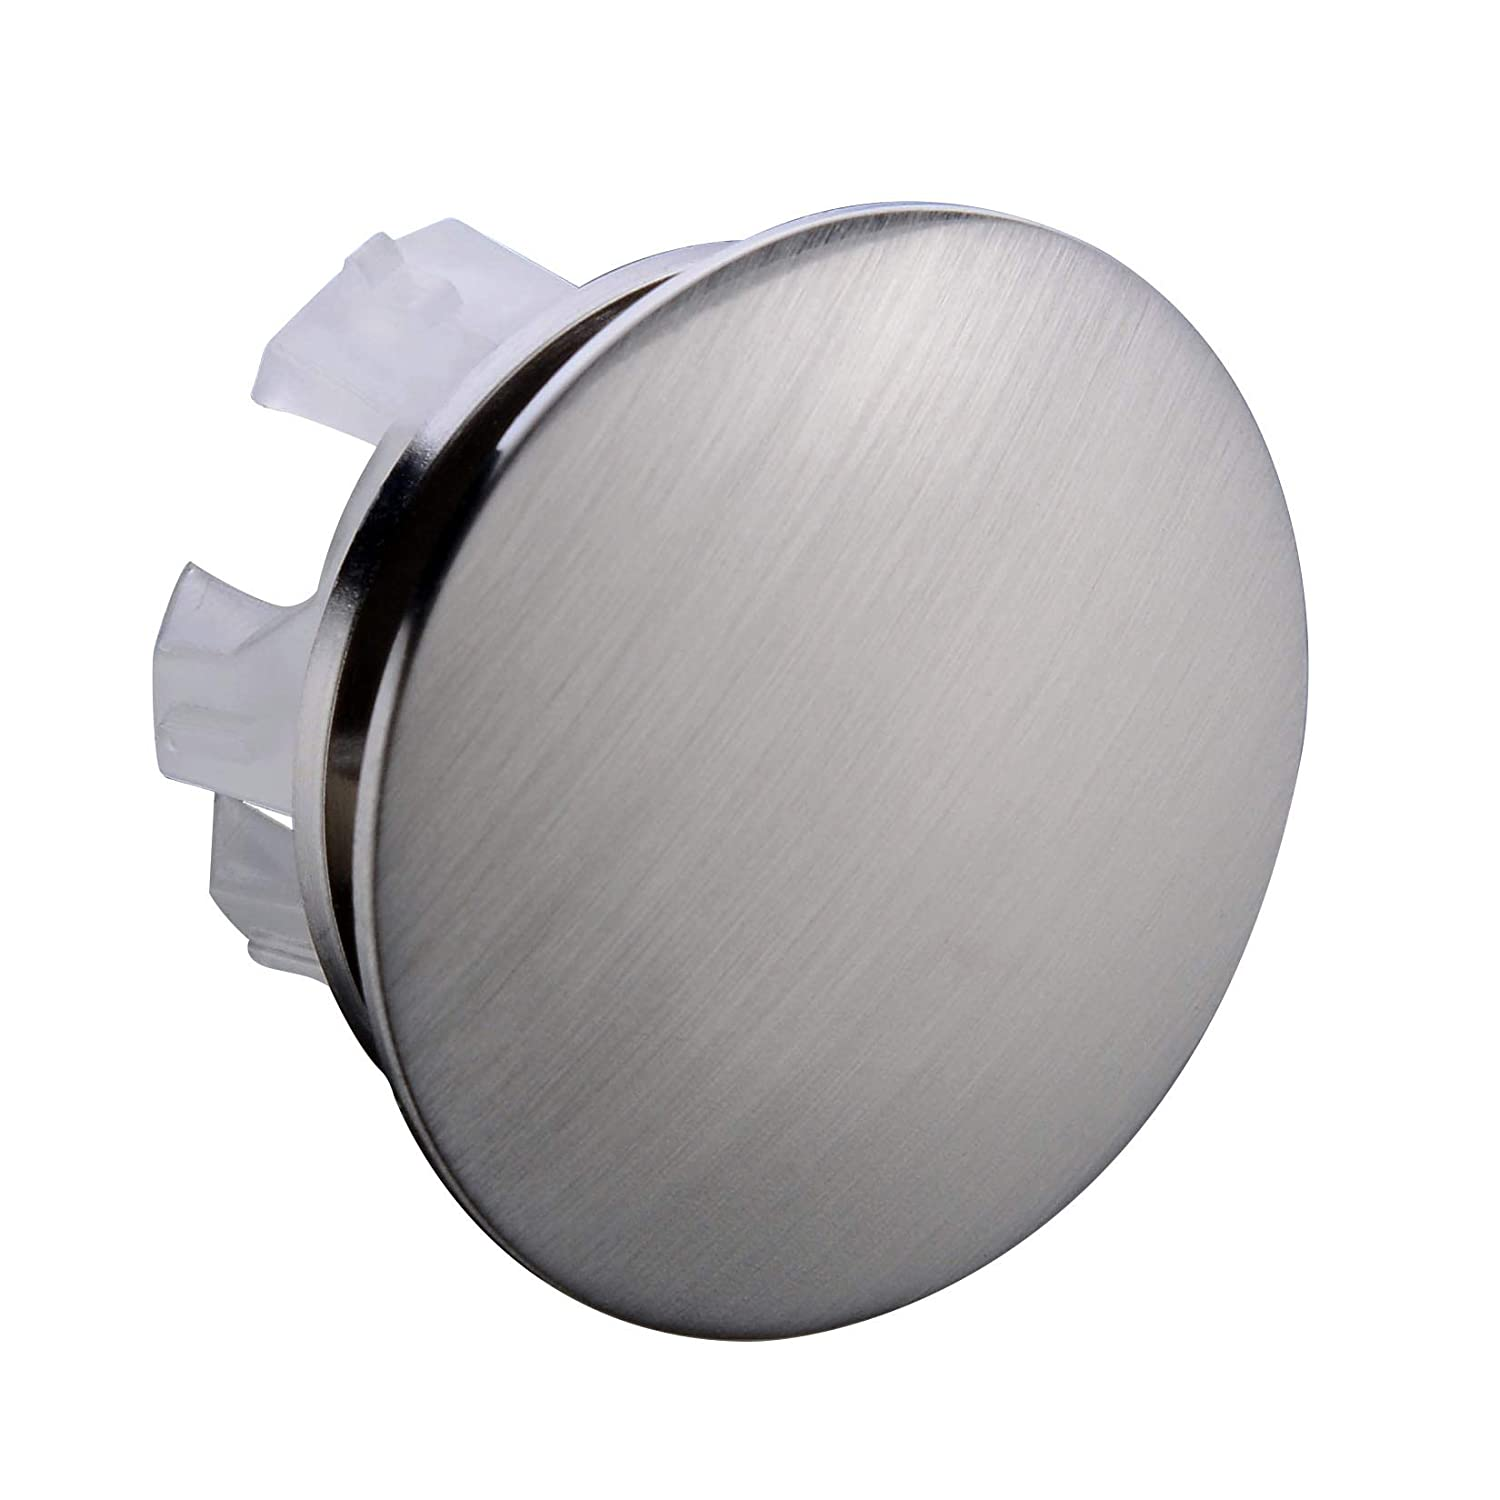 Orhemus Solid Brass Sink Overflow Cap Round Hole Cover for Bathroom Basin, Brushed Nickel Finish